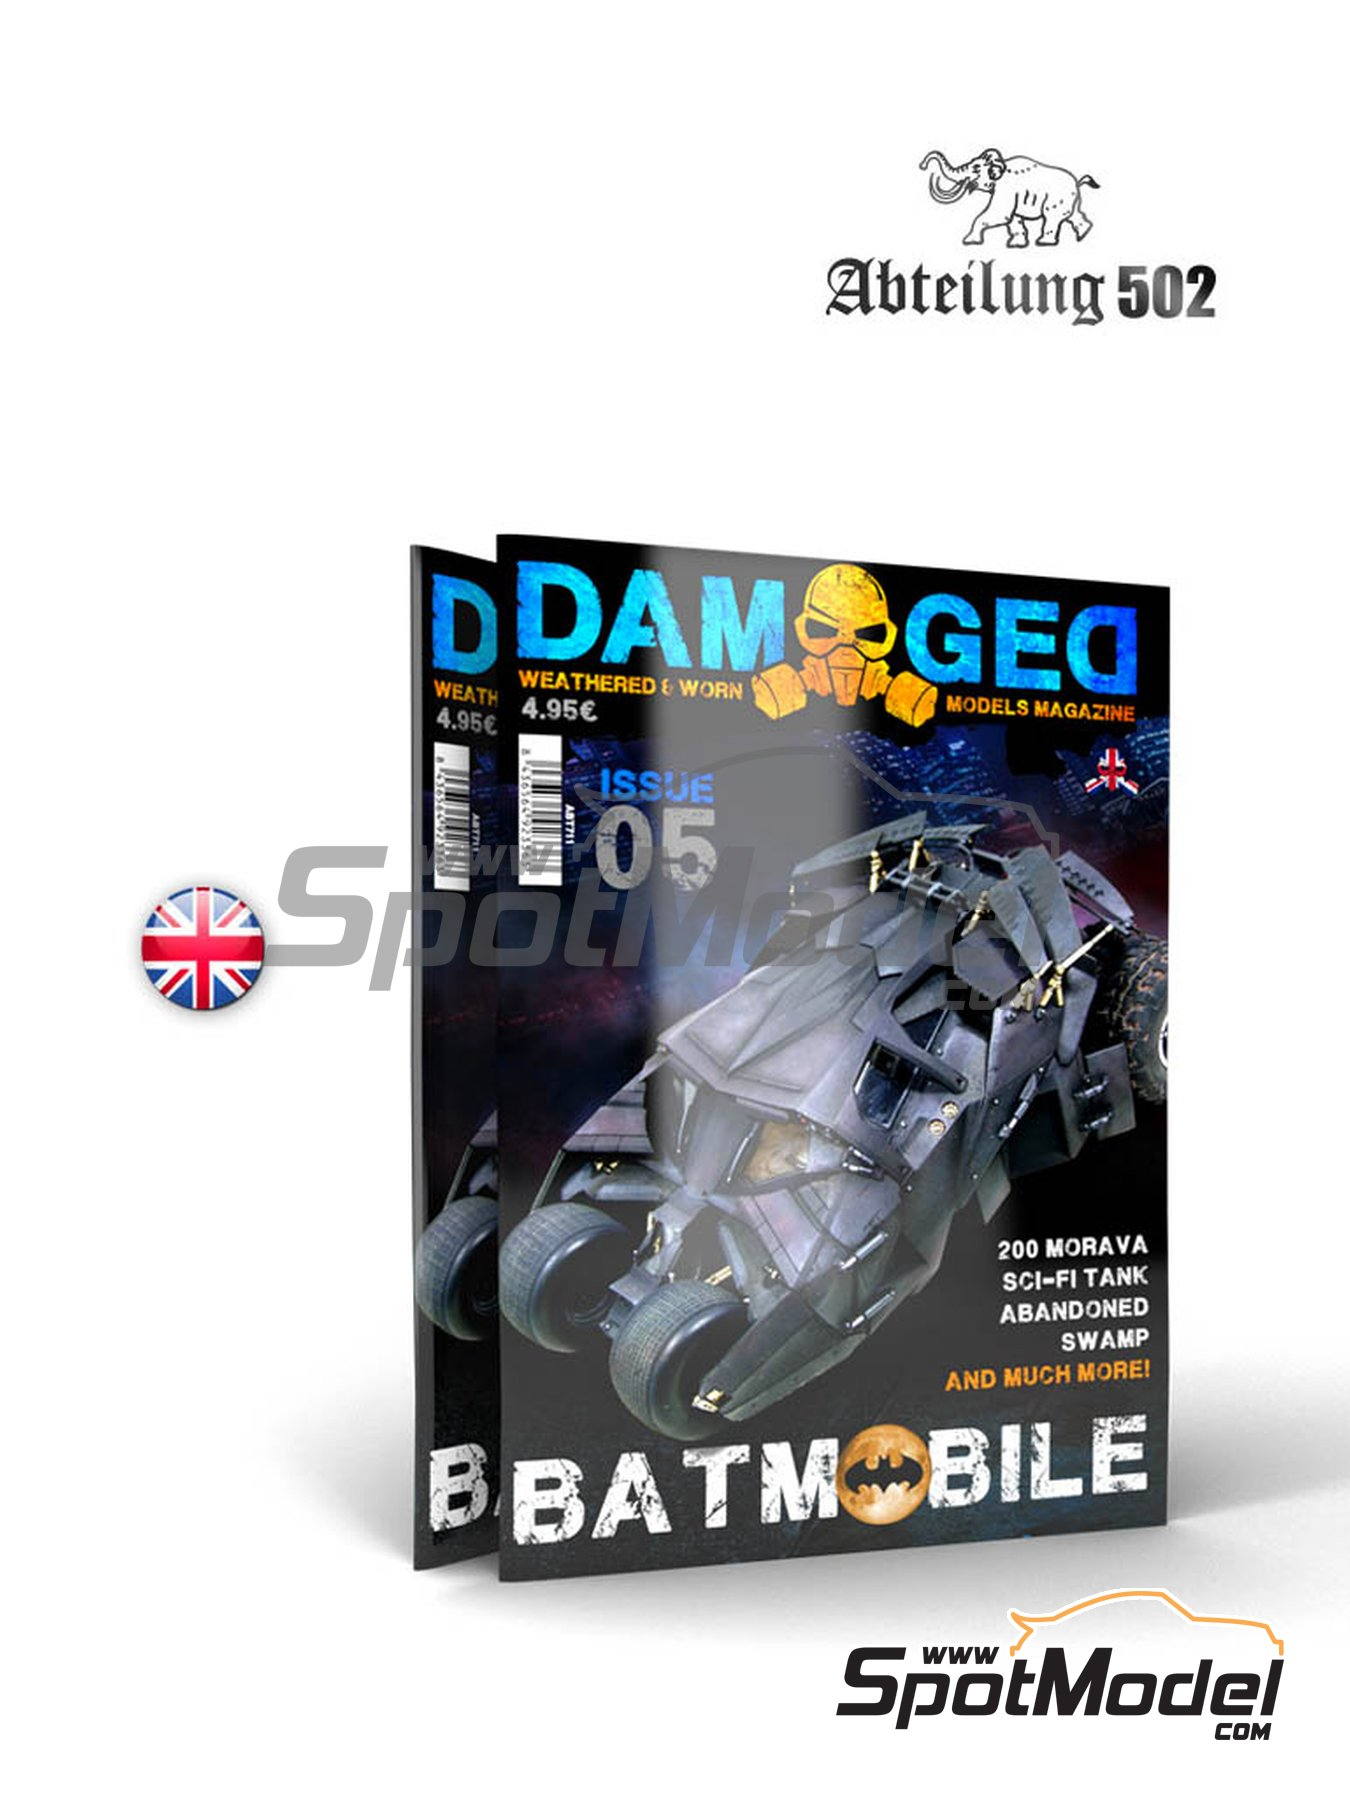 Damaged - Weathered and worn: Number 5 - english edition | Magazine manufactured by AK Interactive (ref.ABT711) image